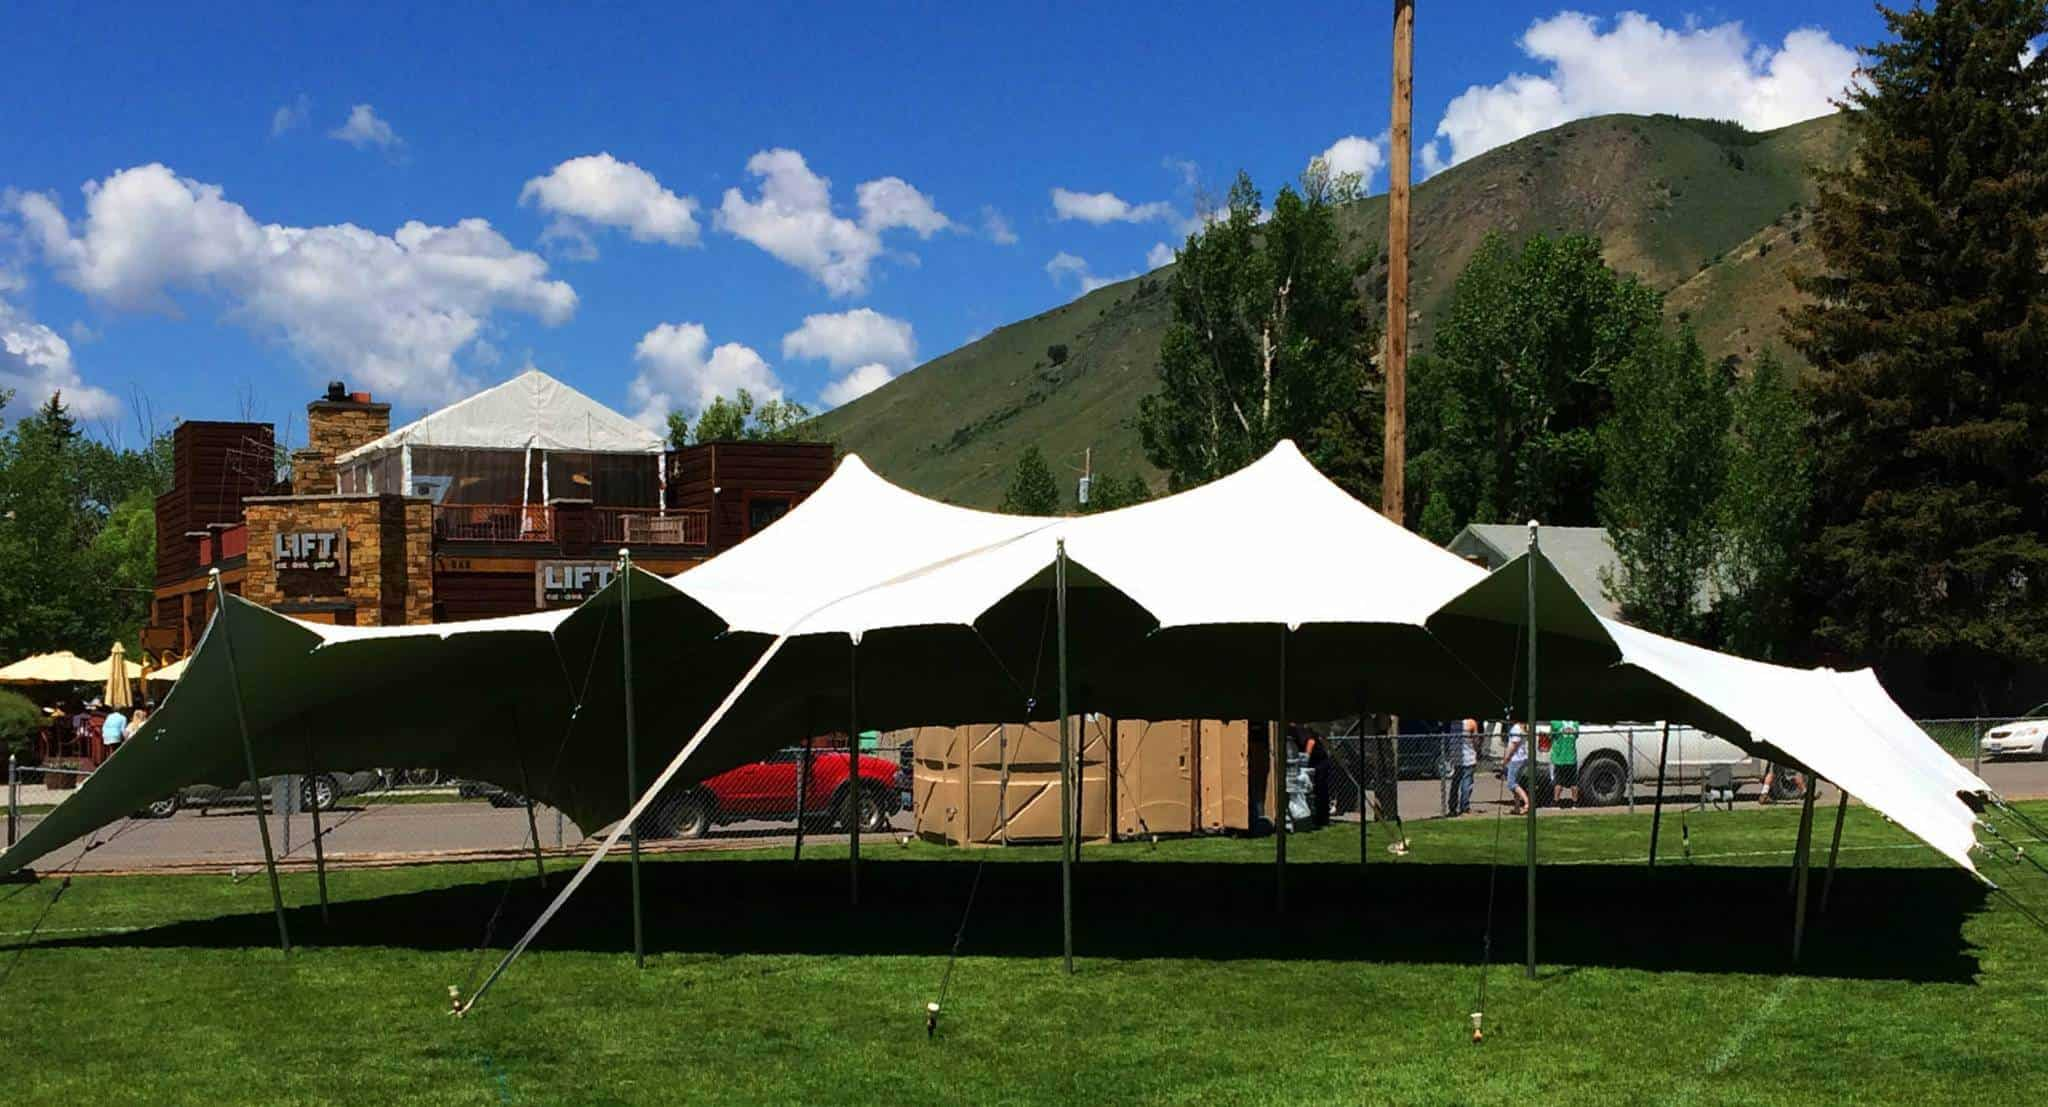 Stretch-Tent-Event-Snow-King-Resort-004 & Stretch-Tent-Event-Snow-King-Resort-004 Peak Stretch Tents ...